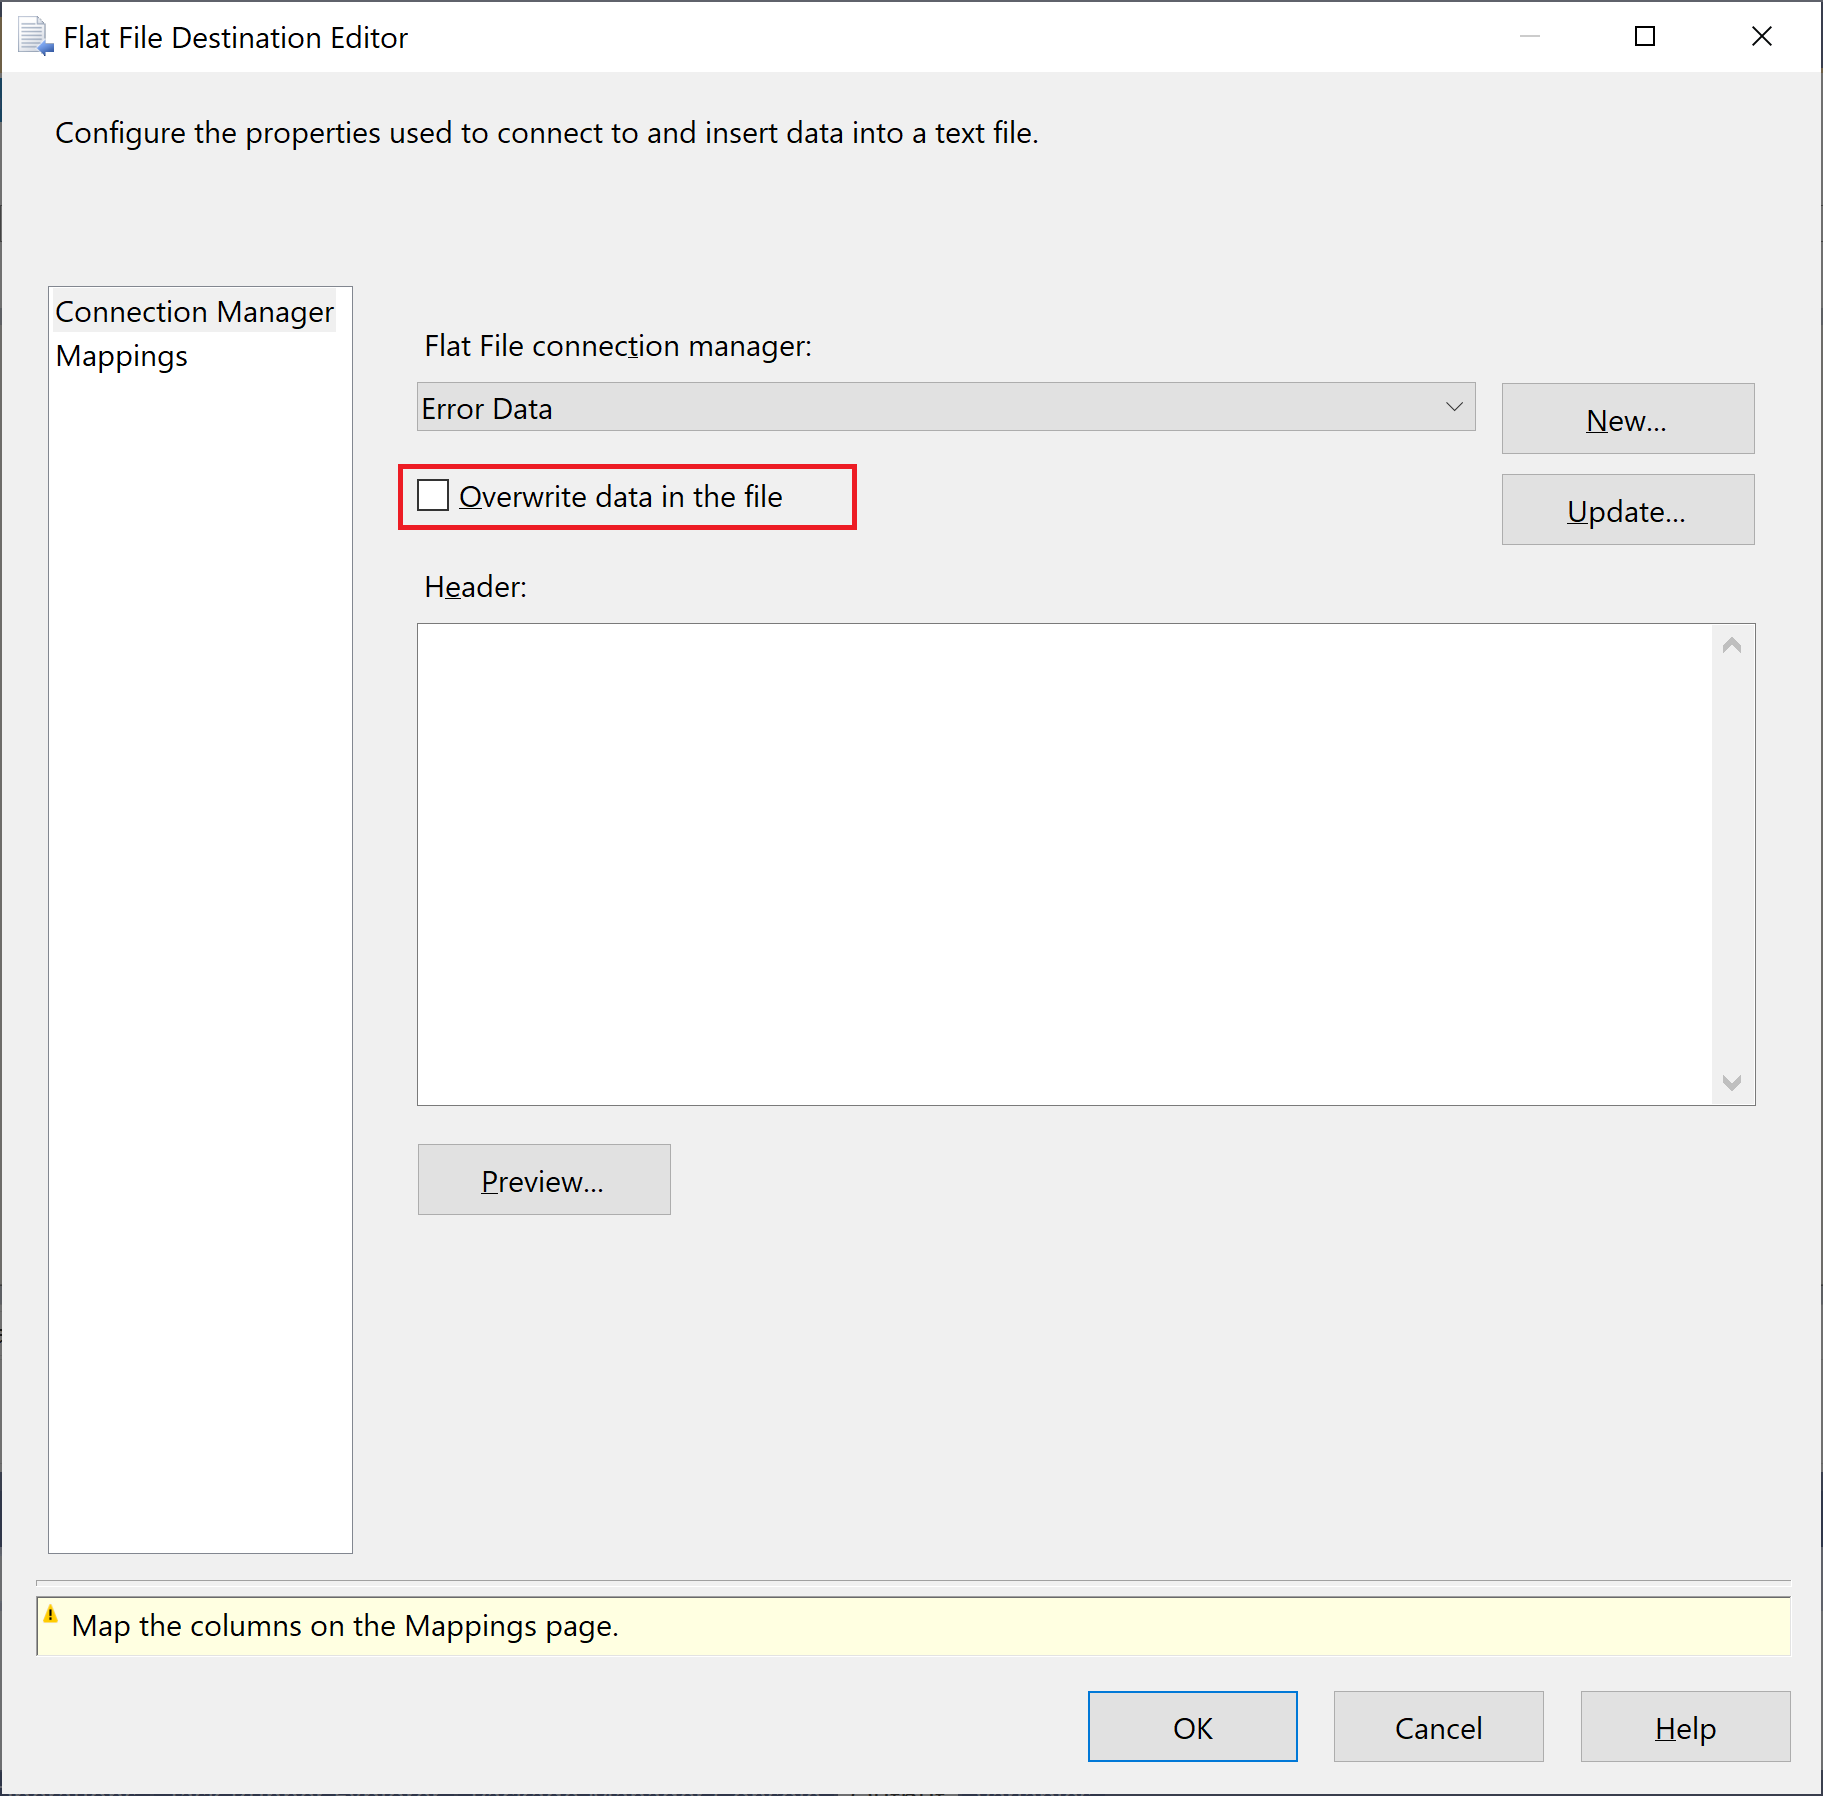 Clear Overwrite data in the file checkbox